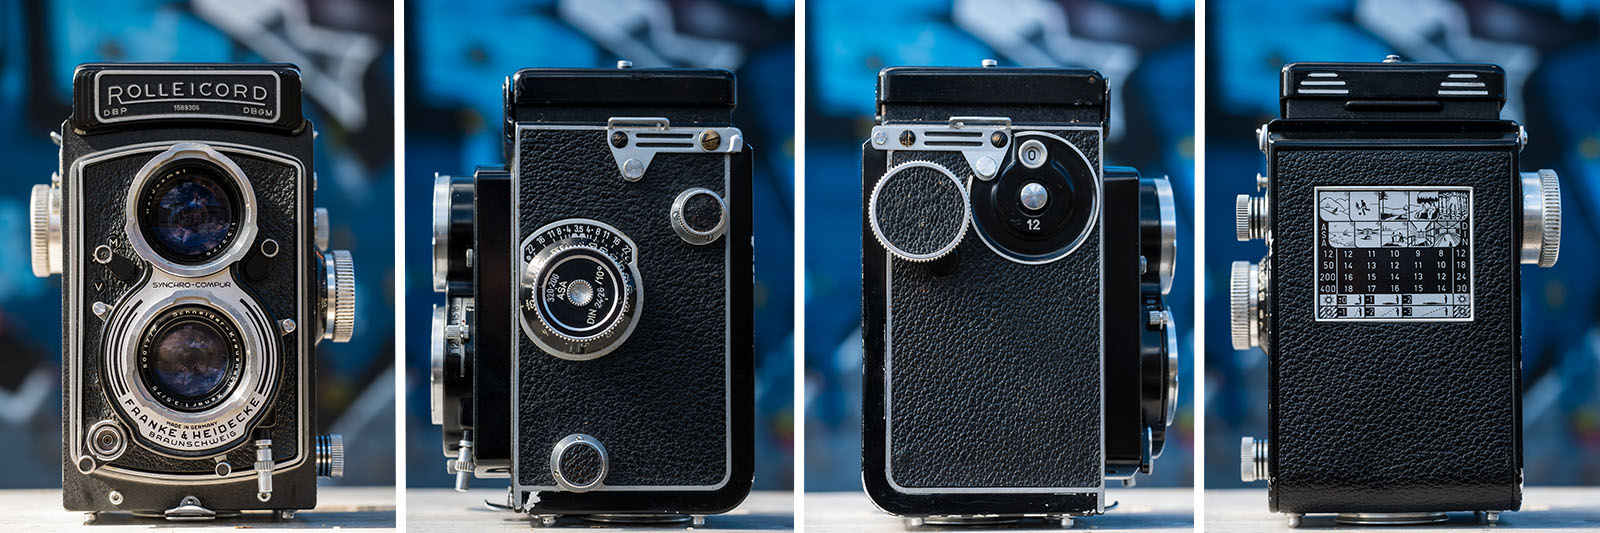 Rolleicord Va Type 1 – The middle twin - Photo Thinking